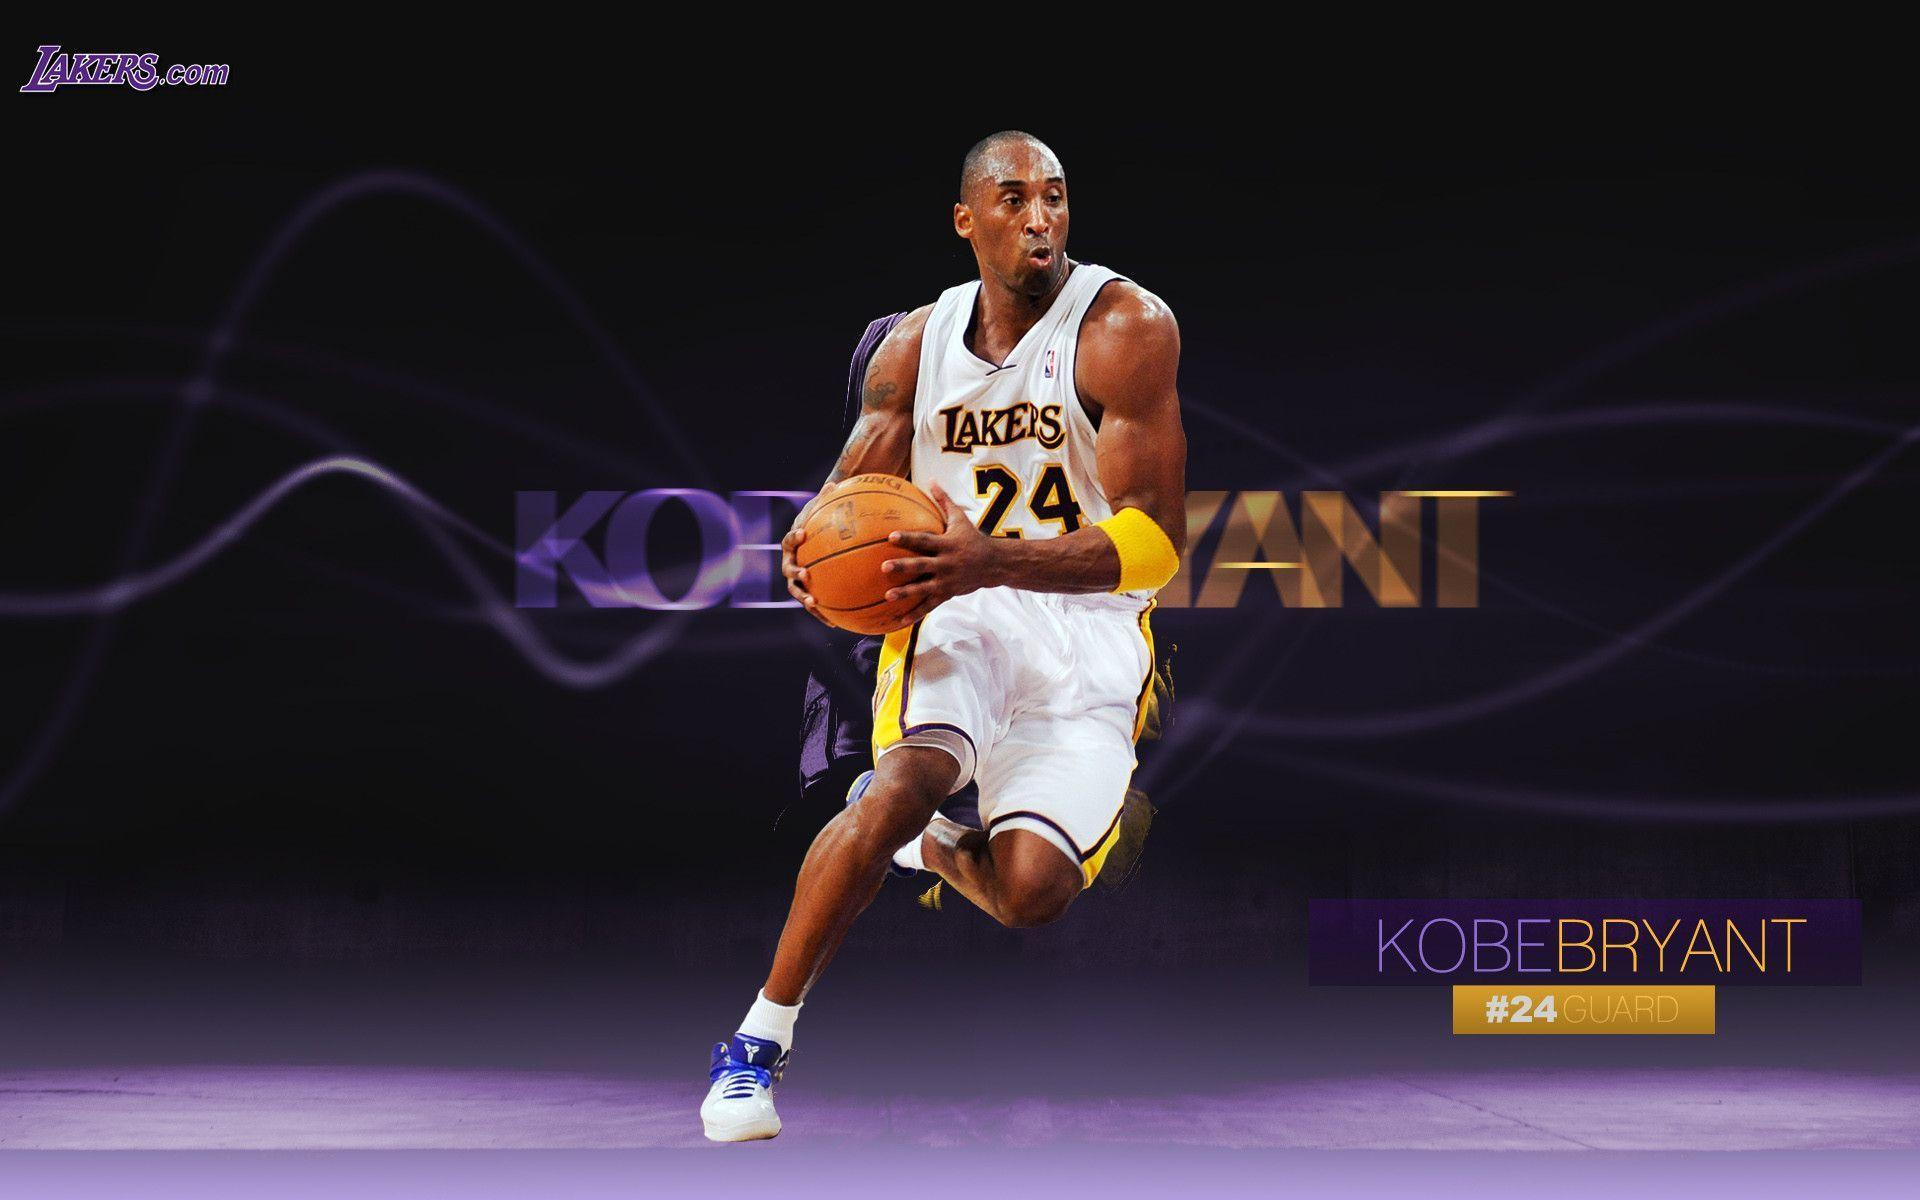 kobe bryant 24 wallpapers wallpaper cave